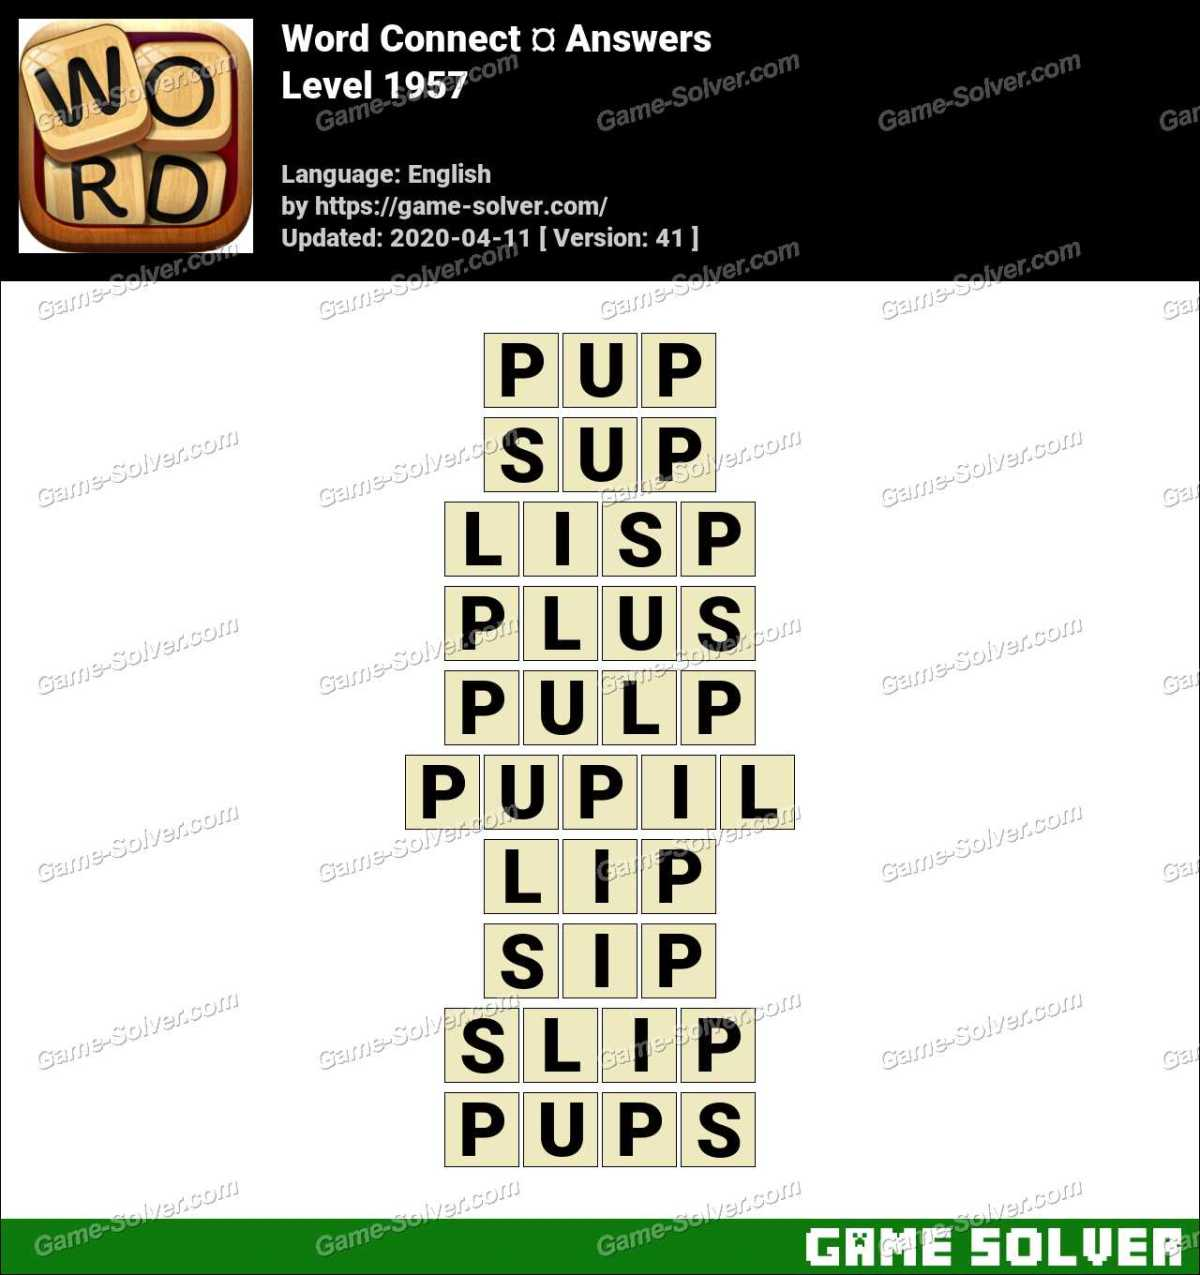 Word Connect Level 1957 Answers